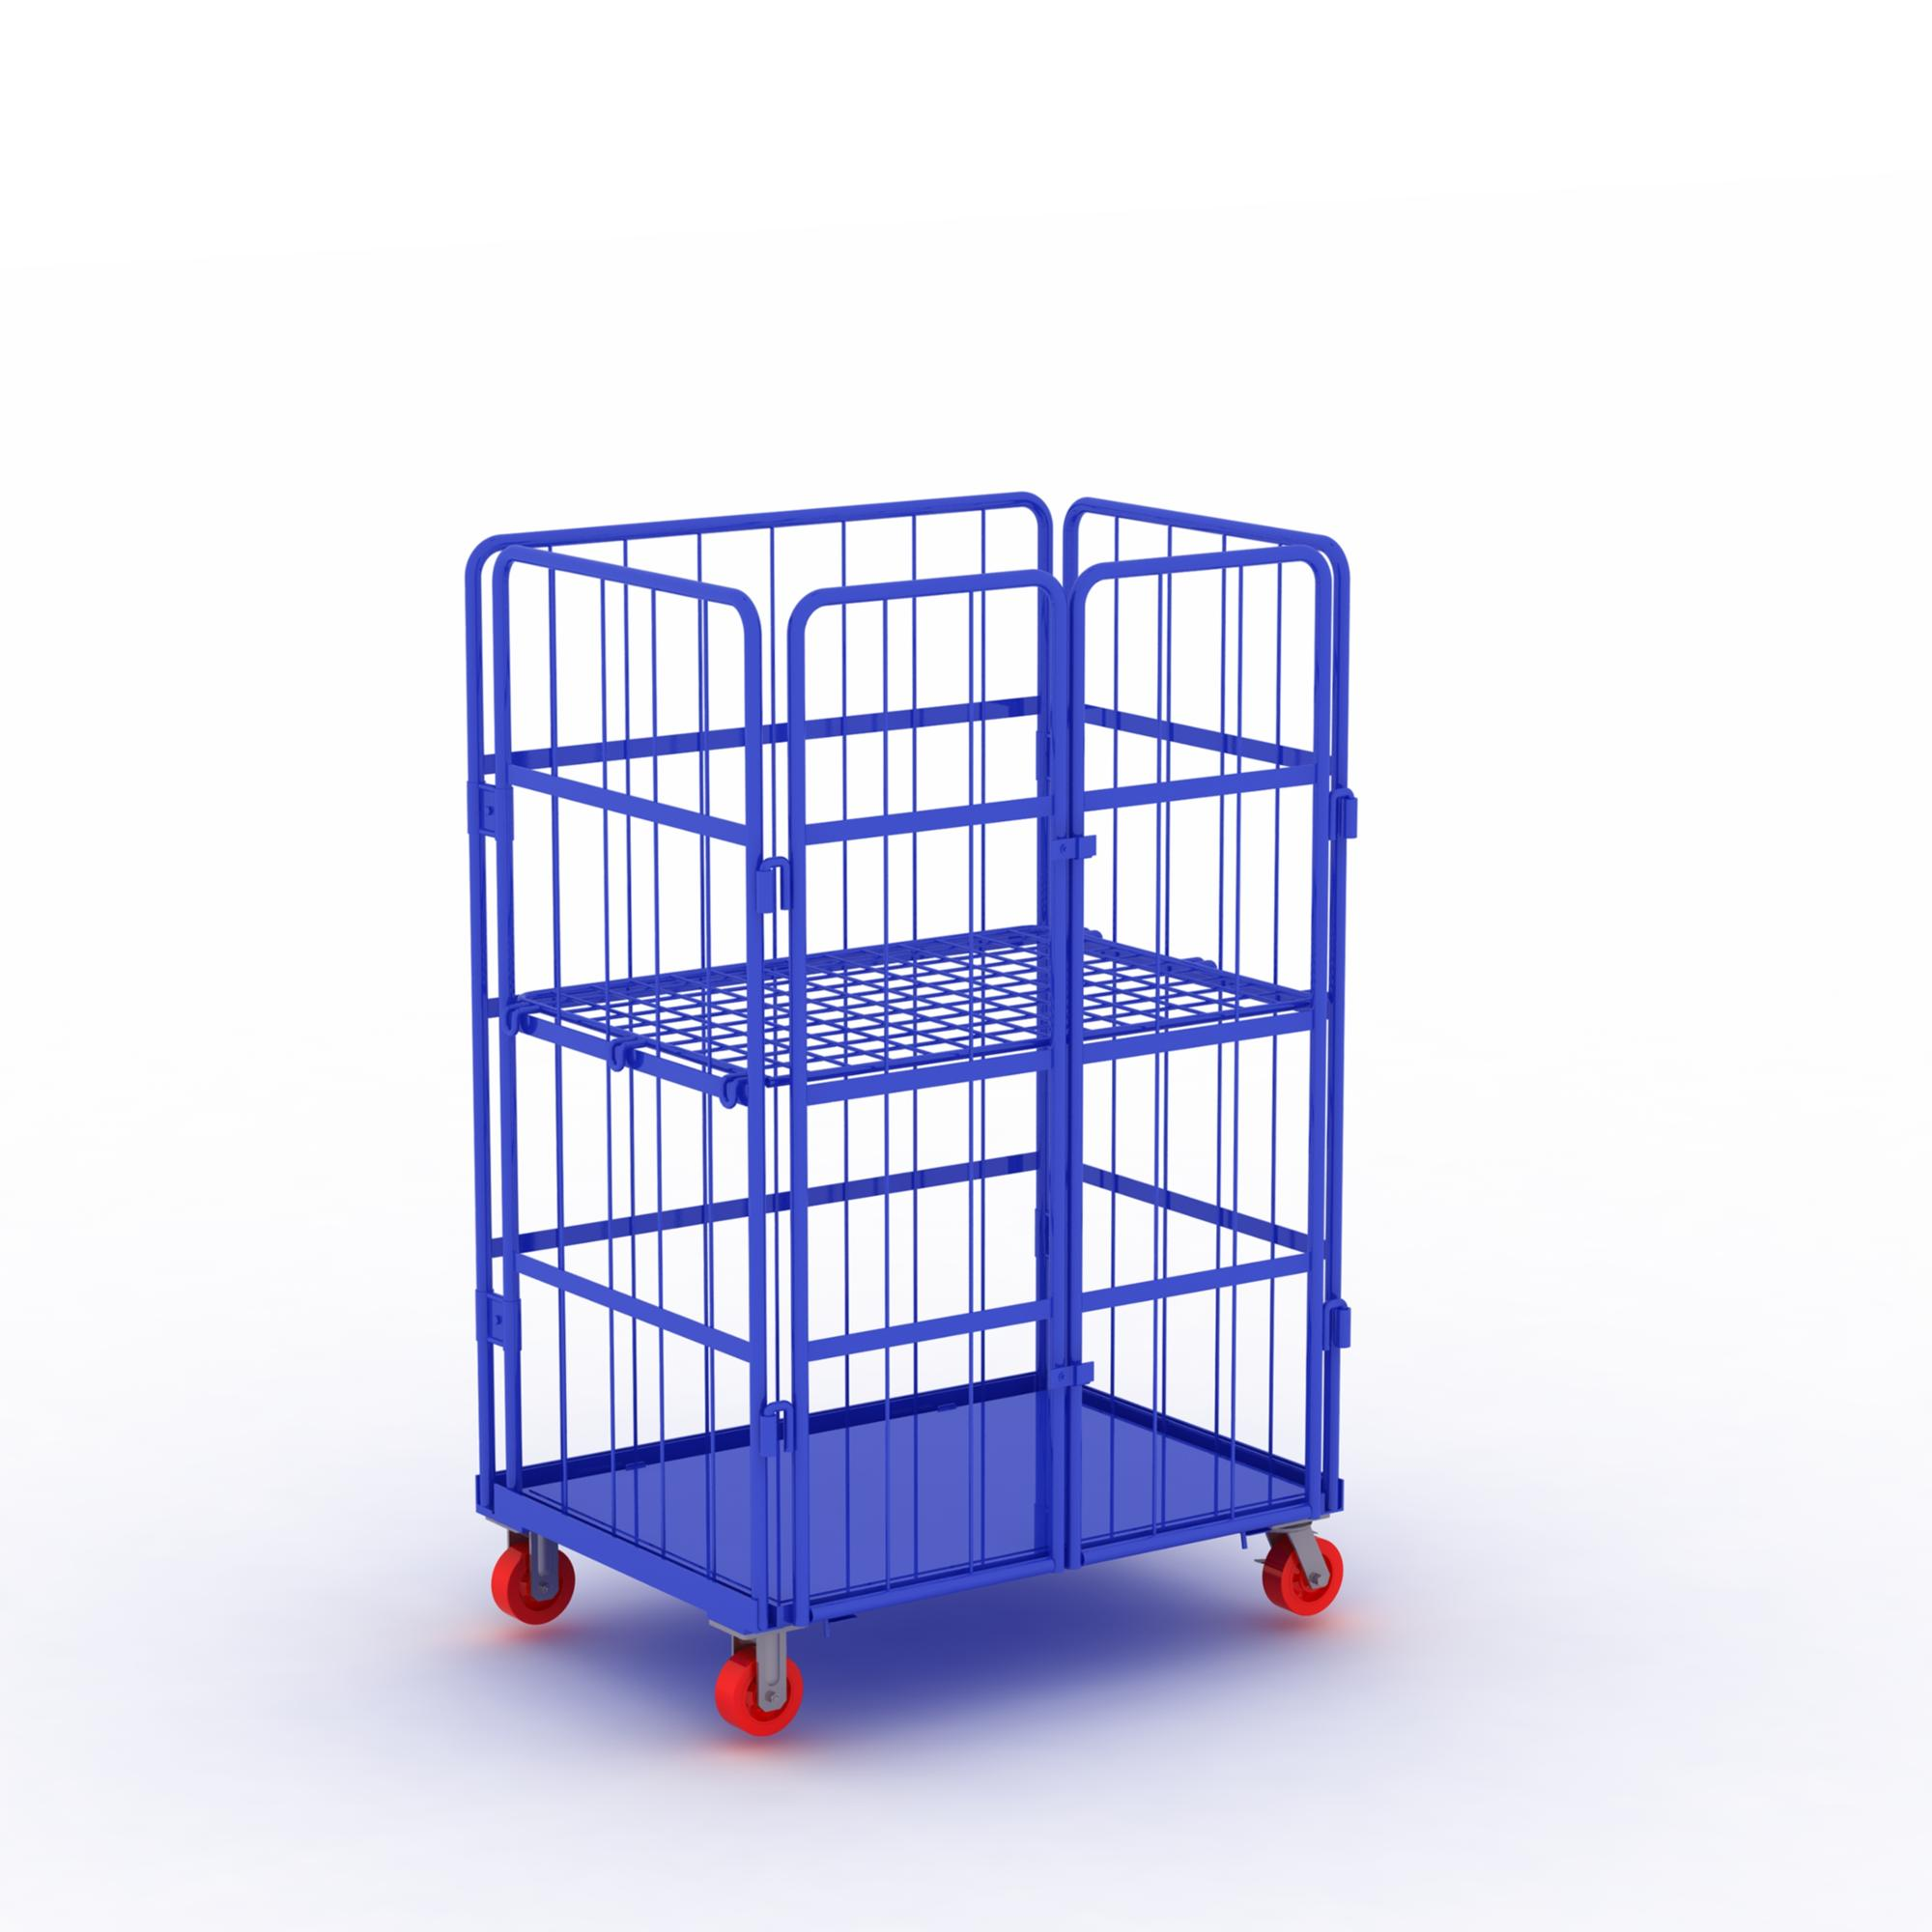 A Frame Trolley A Frame Foldable Carry Storage Table Trolley Buy Carry Trolley Table Trolley Storage Trolley Product On Alibaba